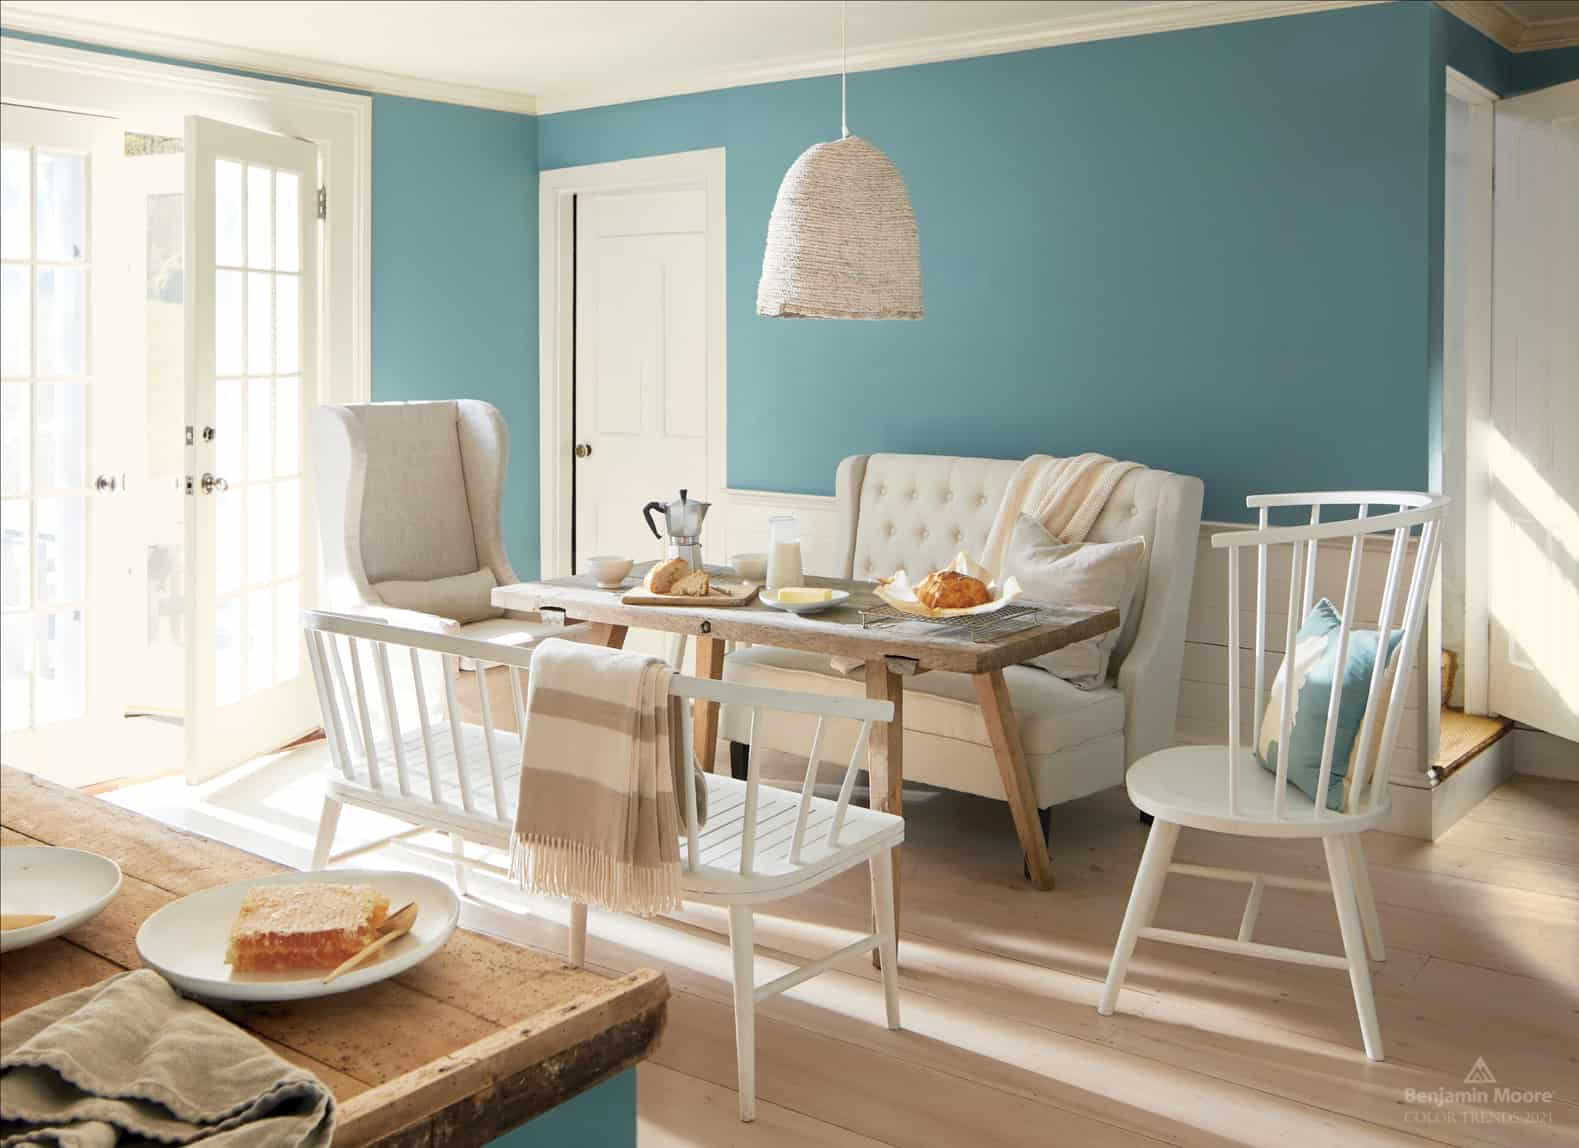 blue wall with 2021 color of the year aegean teal